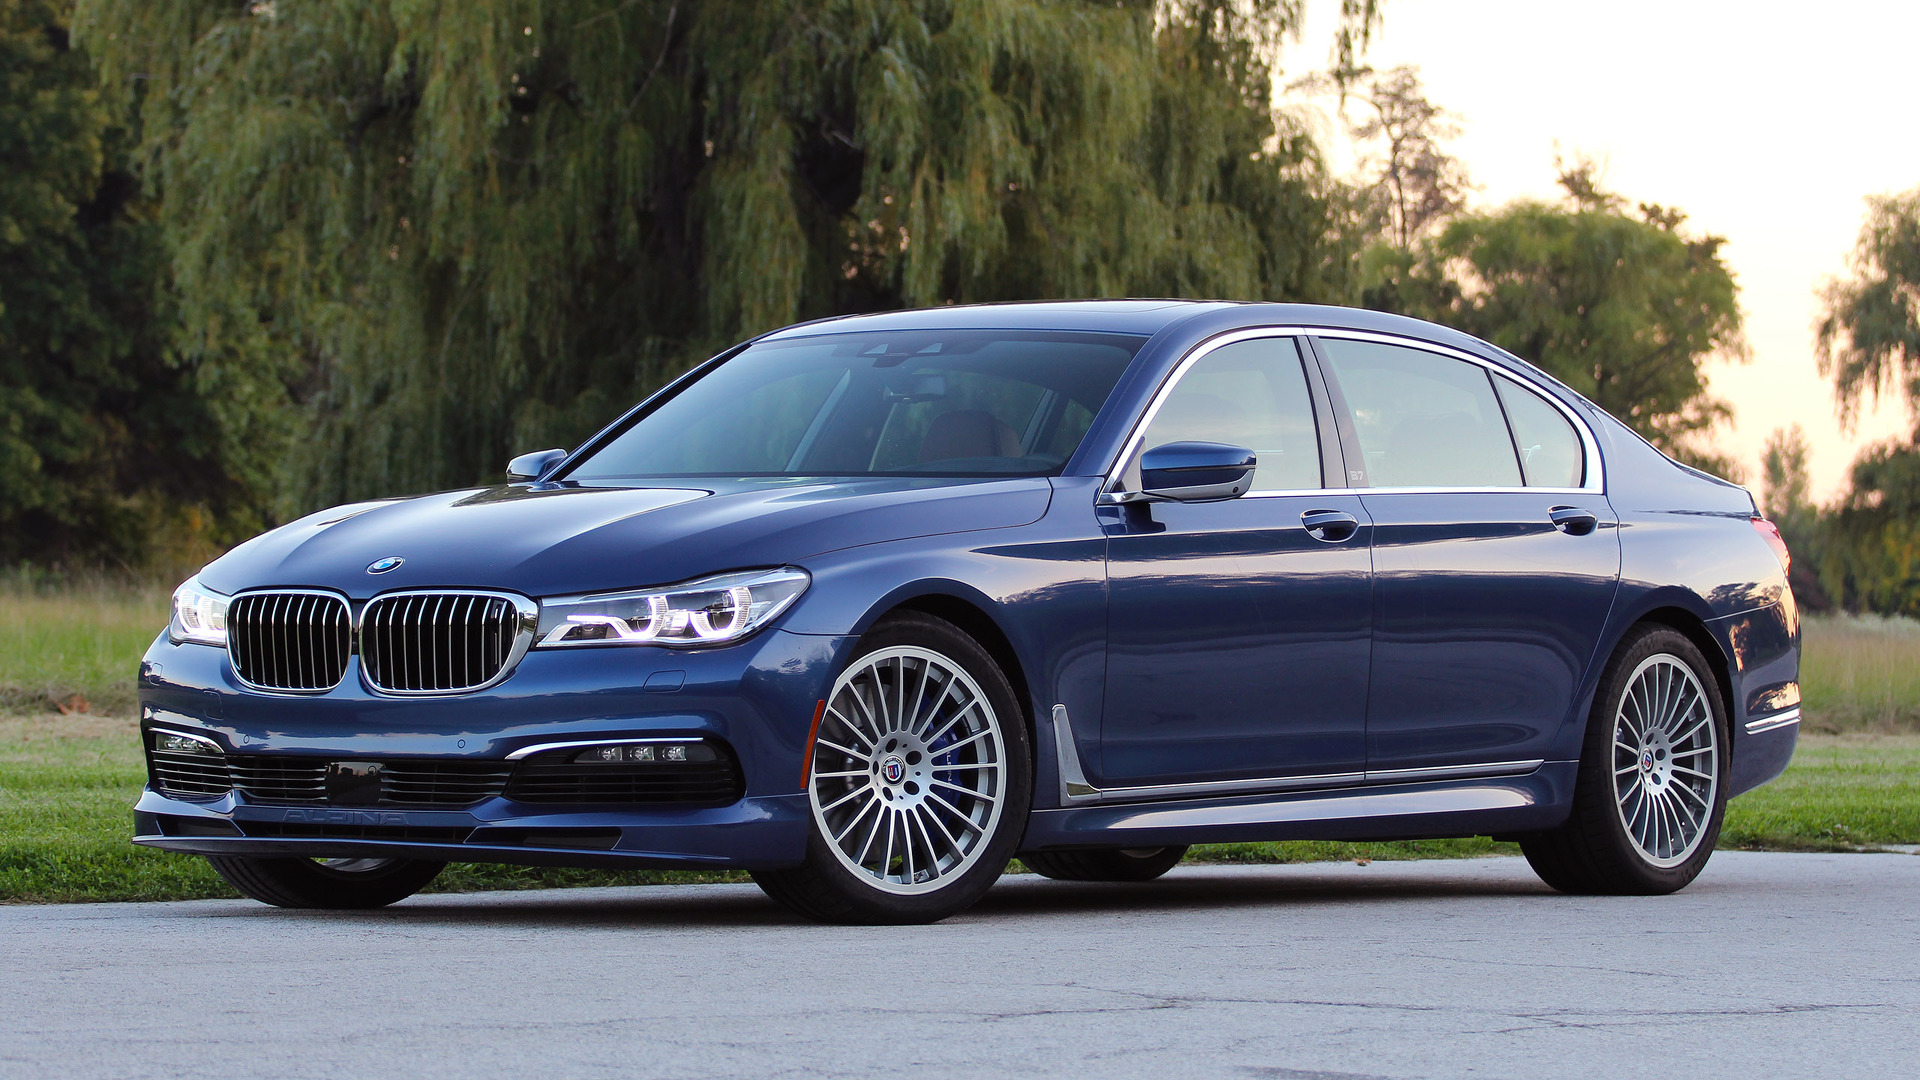 BMW Alpina B Review The Magnificent Seven - Alpina bmw b7 price